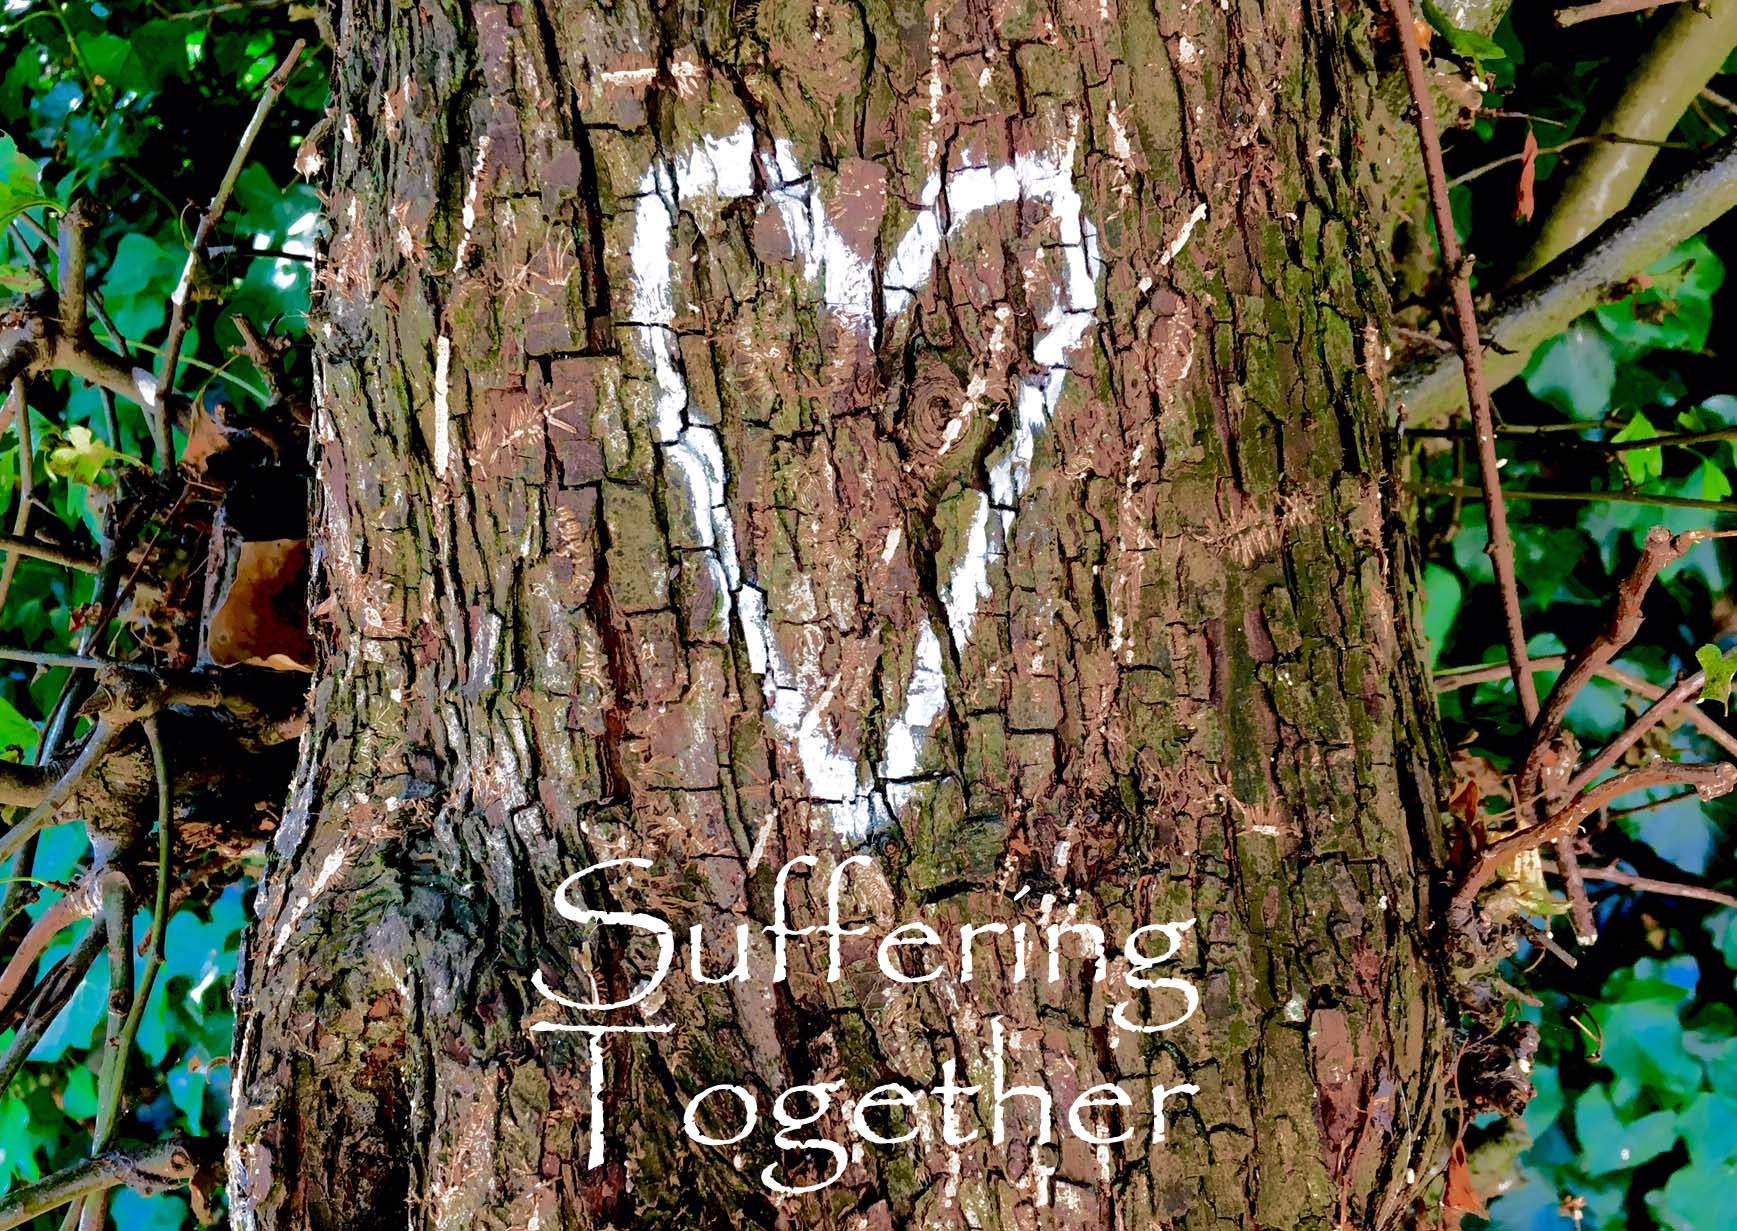 Suffering together copy